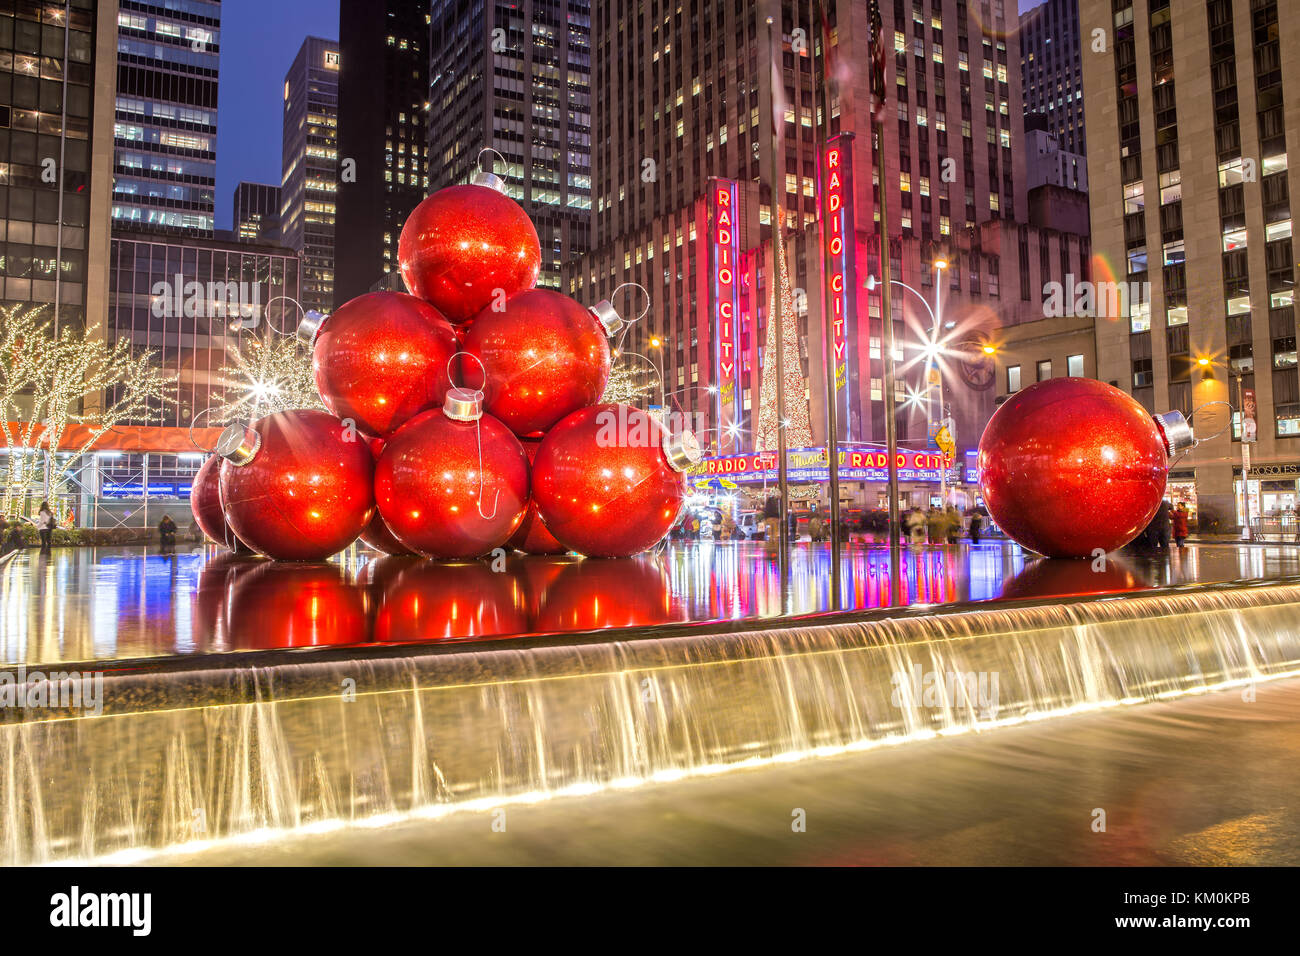 Weihnachtsdekoration in Midtown Manhattan New York City Stockbild